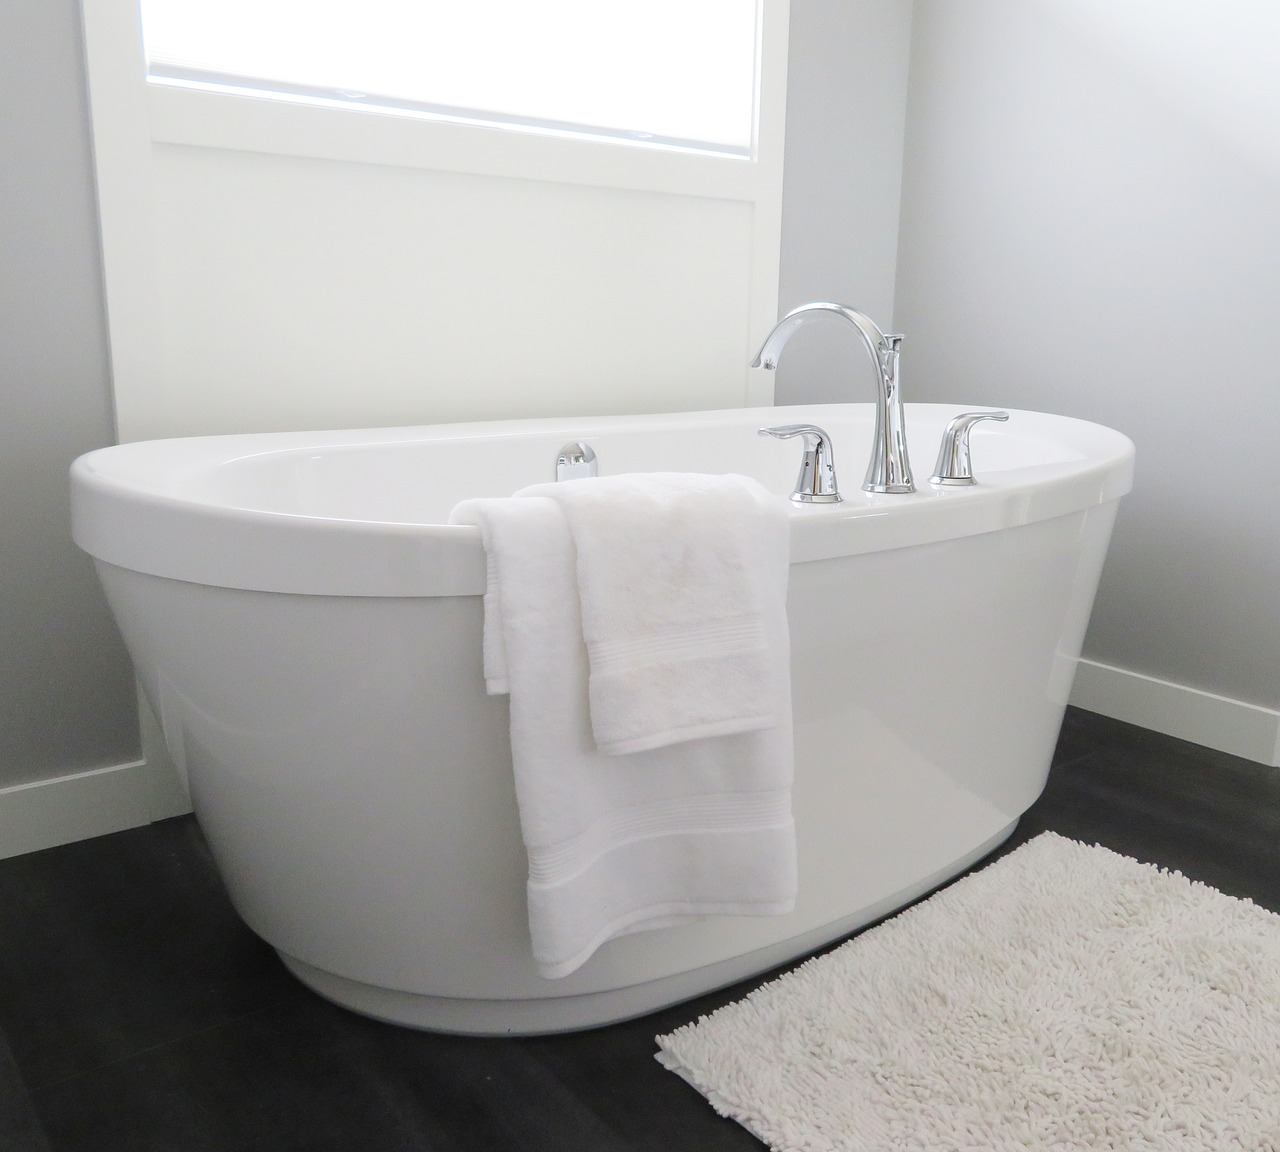 How to Remove Stains from Bathtub- Finish Bathtubs